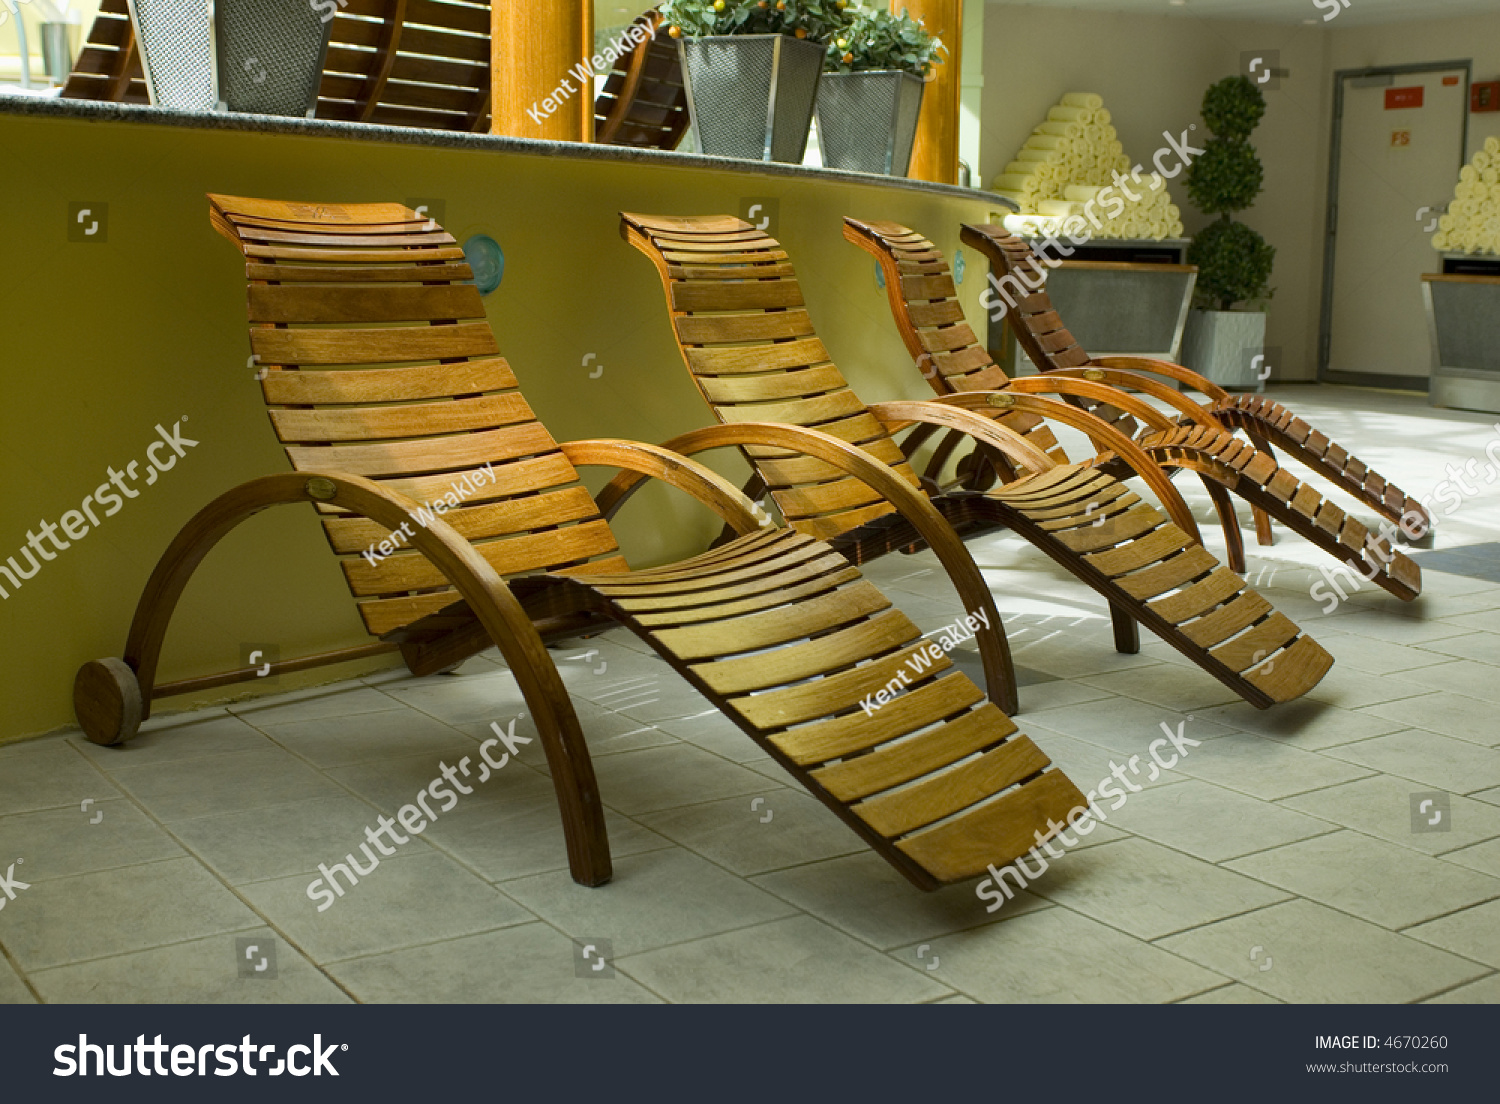 Spa Resort Wood Lounge Chairs Relaxing Stock Photo 4670260